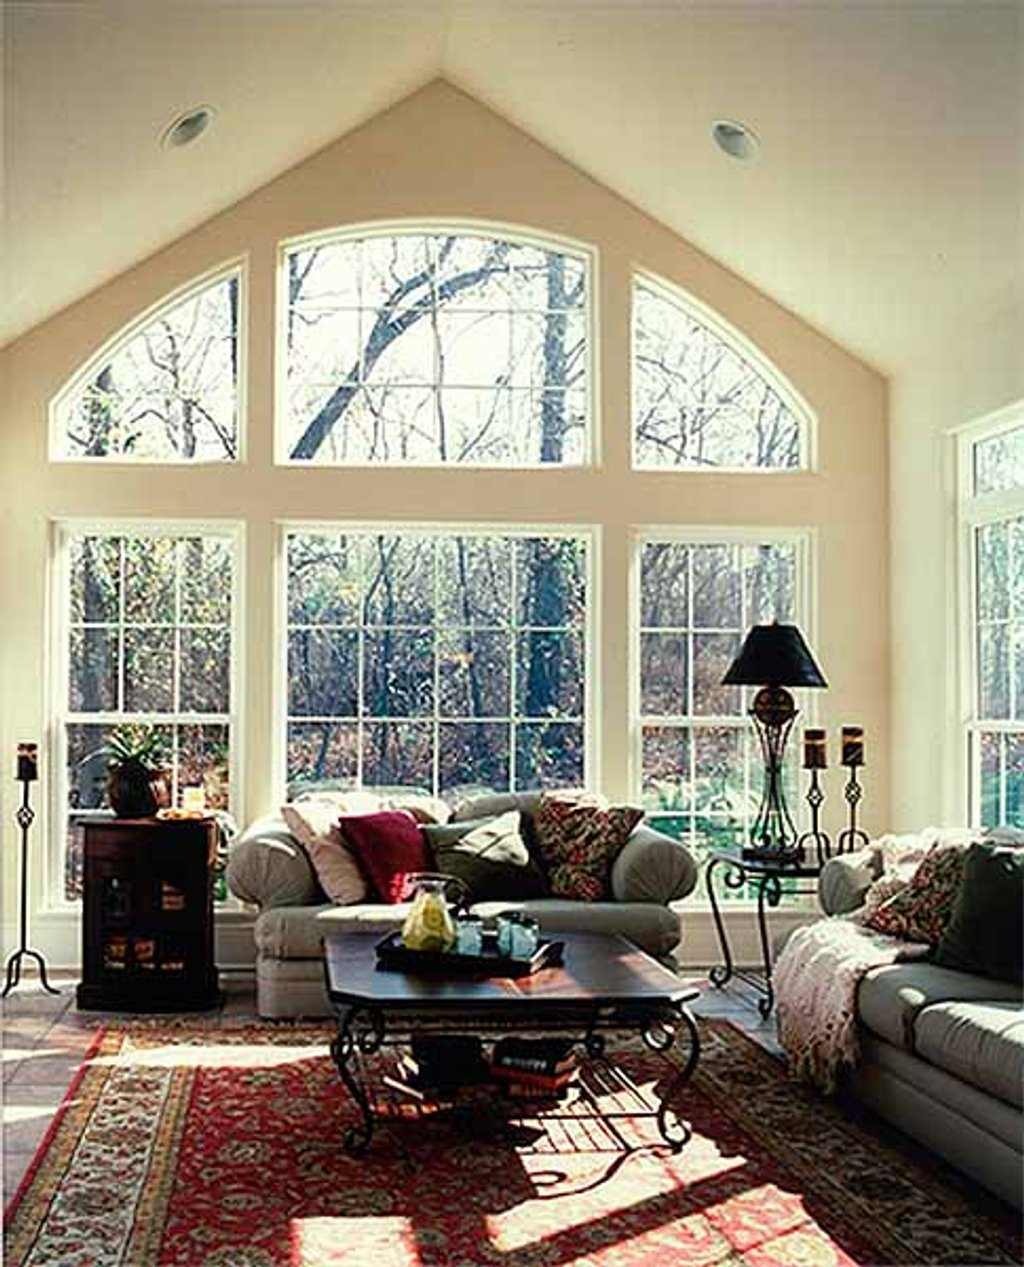 Bedroom Roof Ceiling Top 10 Bedroom Paint Colors Traditional Bedroom Sets Bedroom Bed Designs Images: 4 Beds 2.5 Baths 2854 Sq/Ft